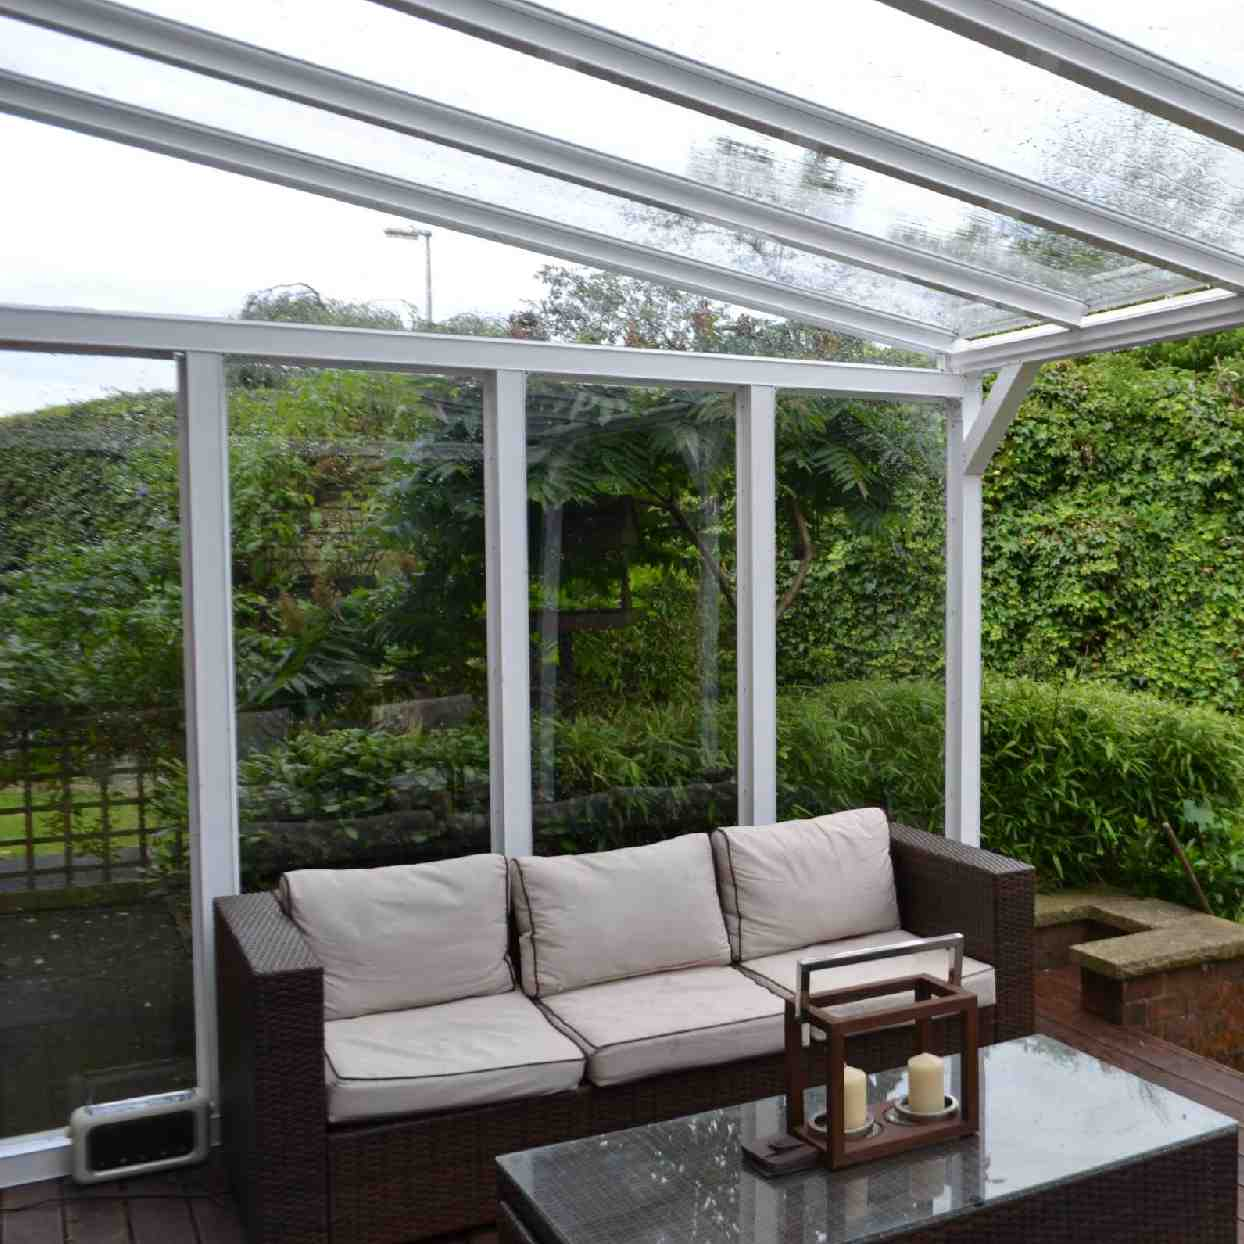 Buy Omega Verandah with 16mm Polycarbonate Glazing - 9.5m (W) x 2.5m (P), (5) Supporting Posts online today